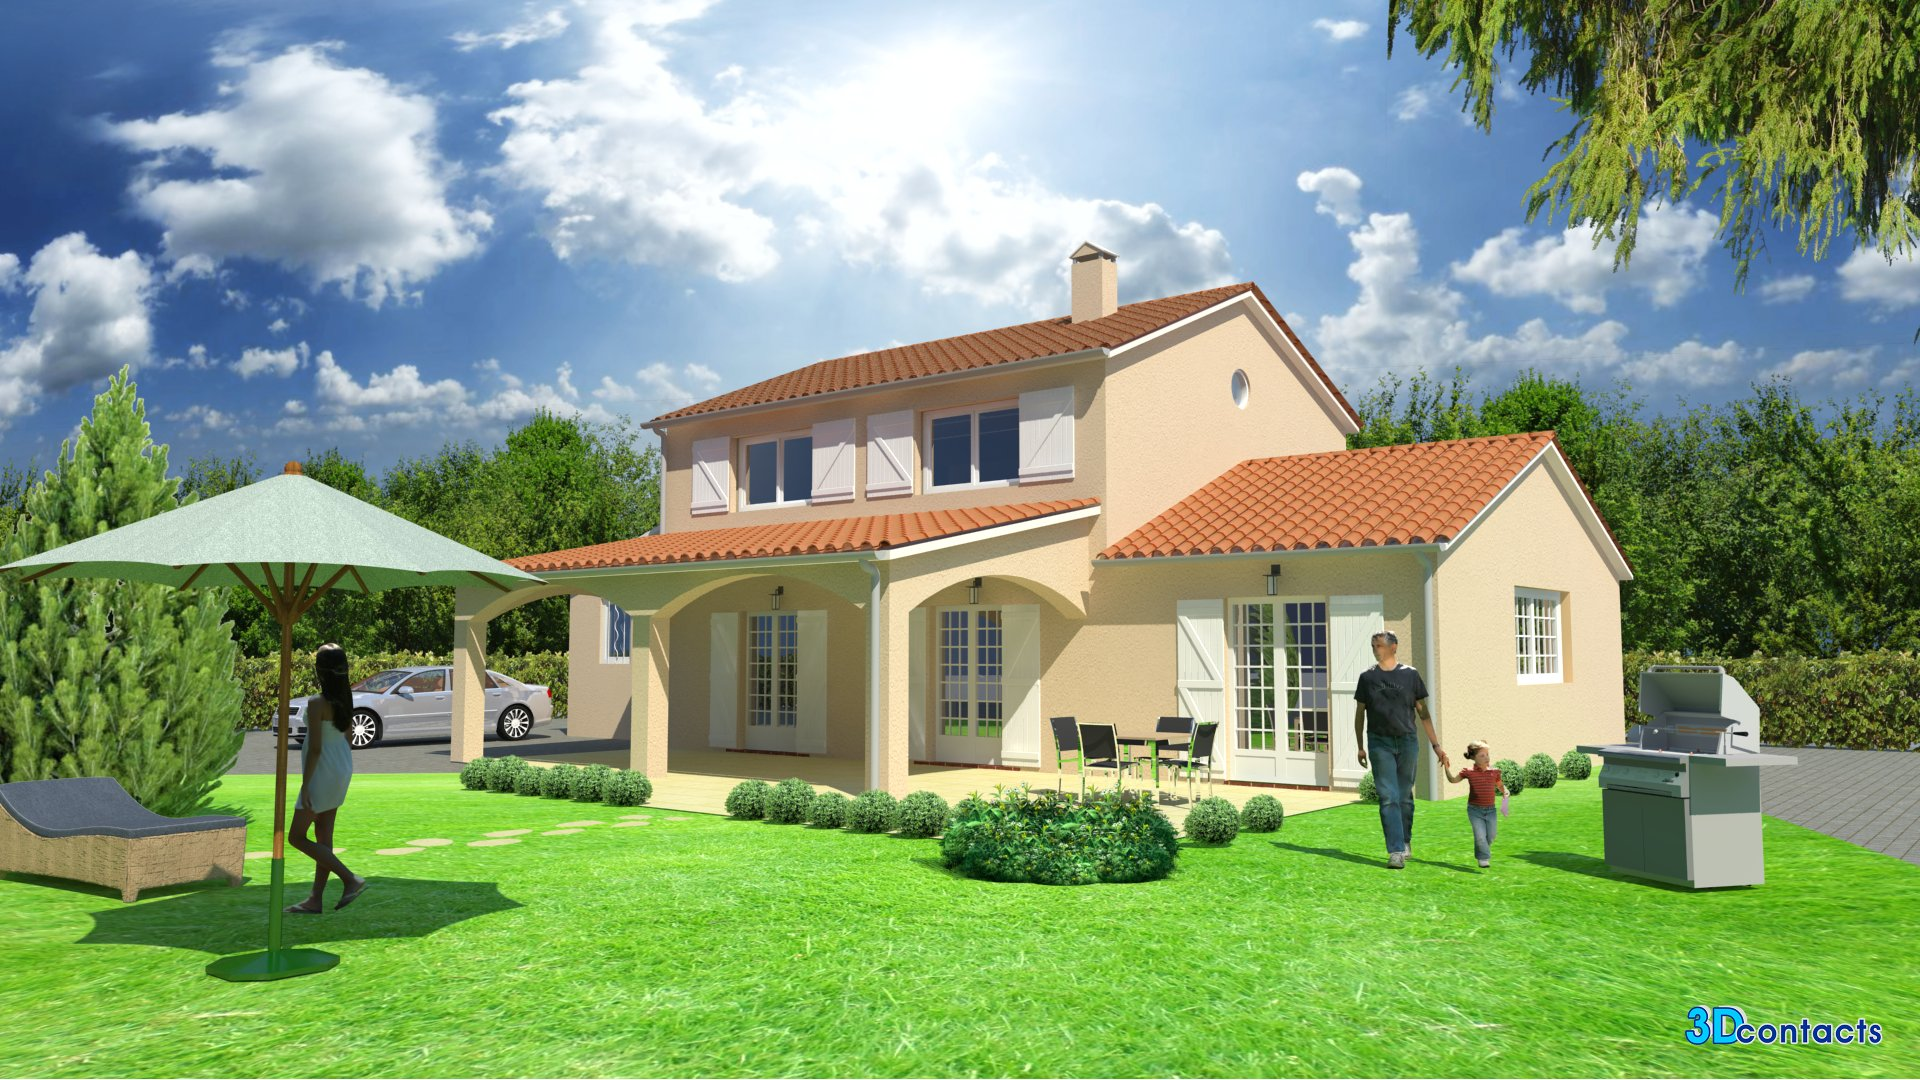 3d contacts quels services for Exterieur maison 3d